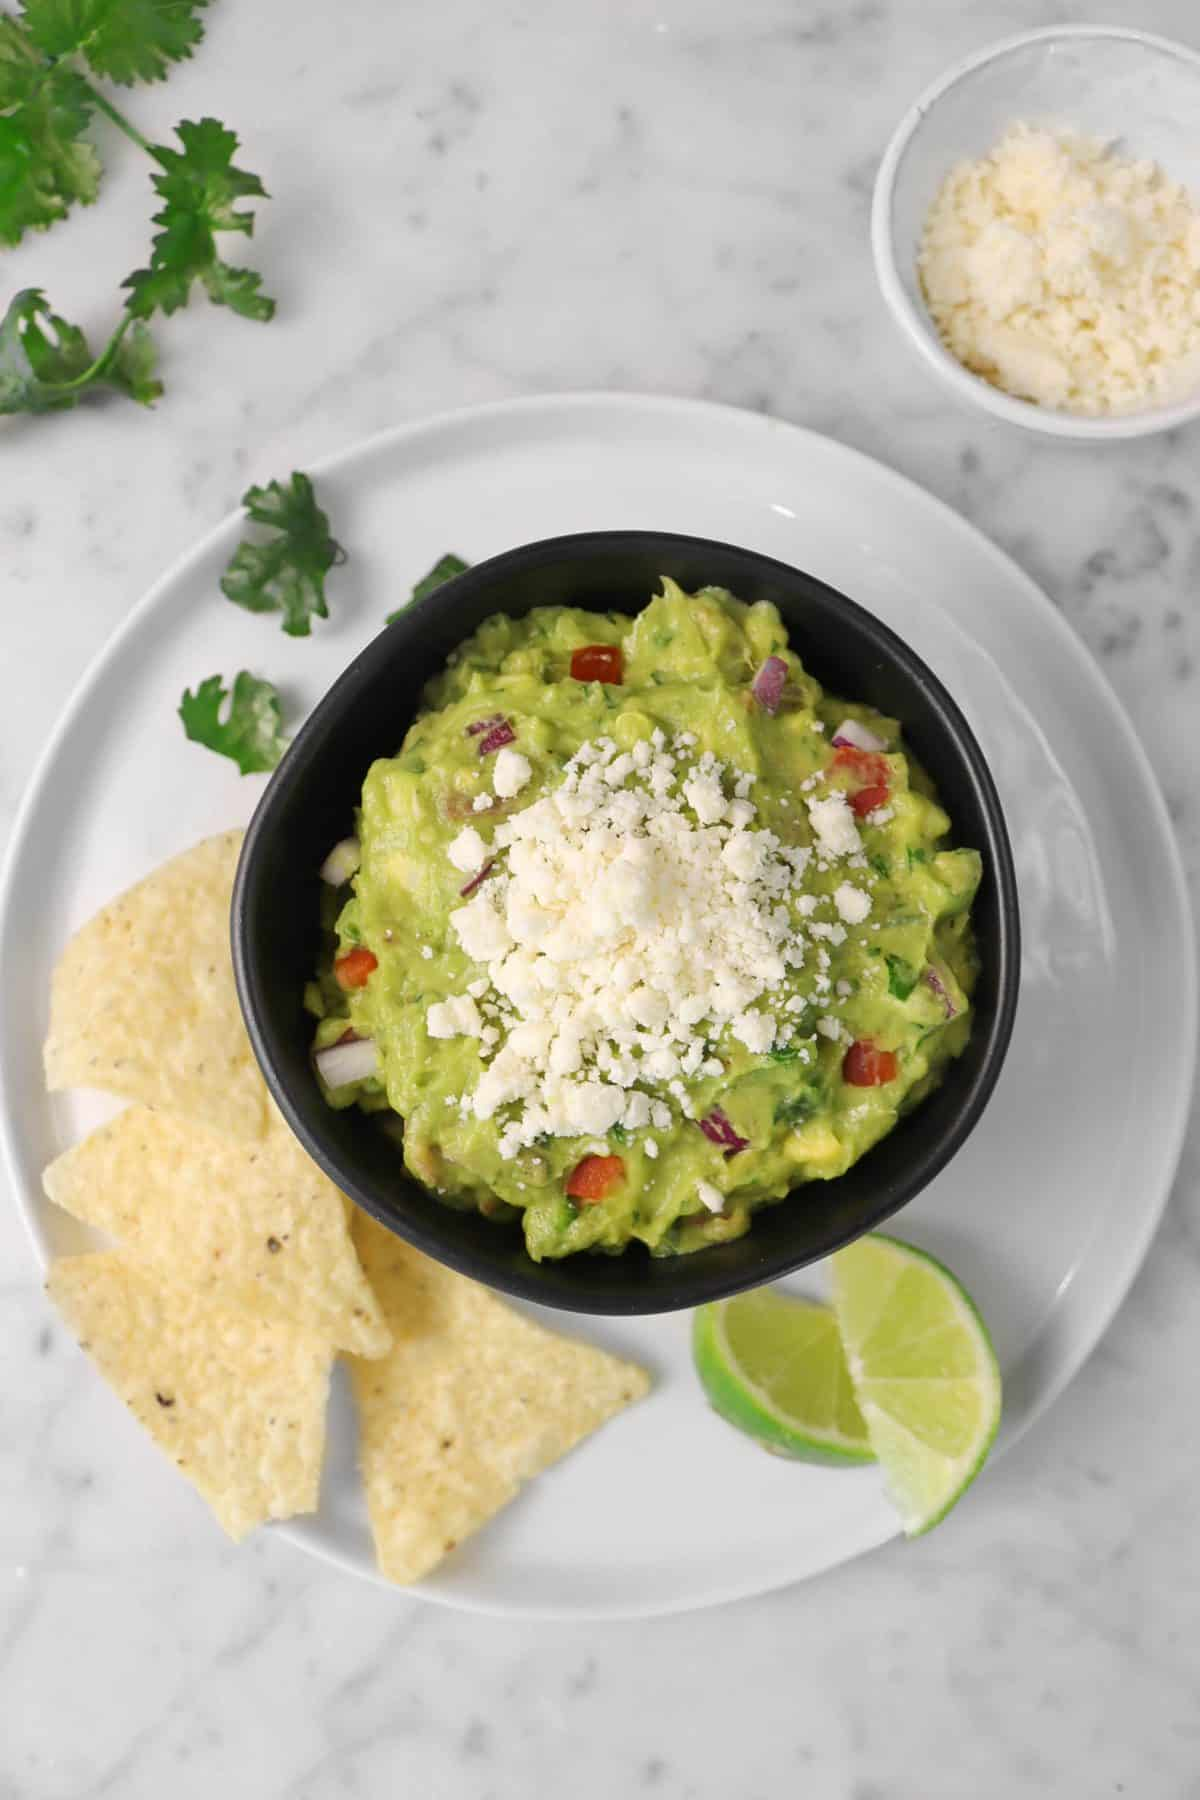 a bowl of guacamole on a white plate with chips, cilantro leaves, and slices of lime with a white bowl of crumbled cotija cheese